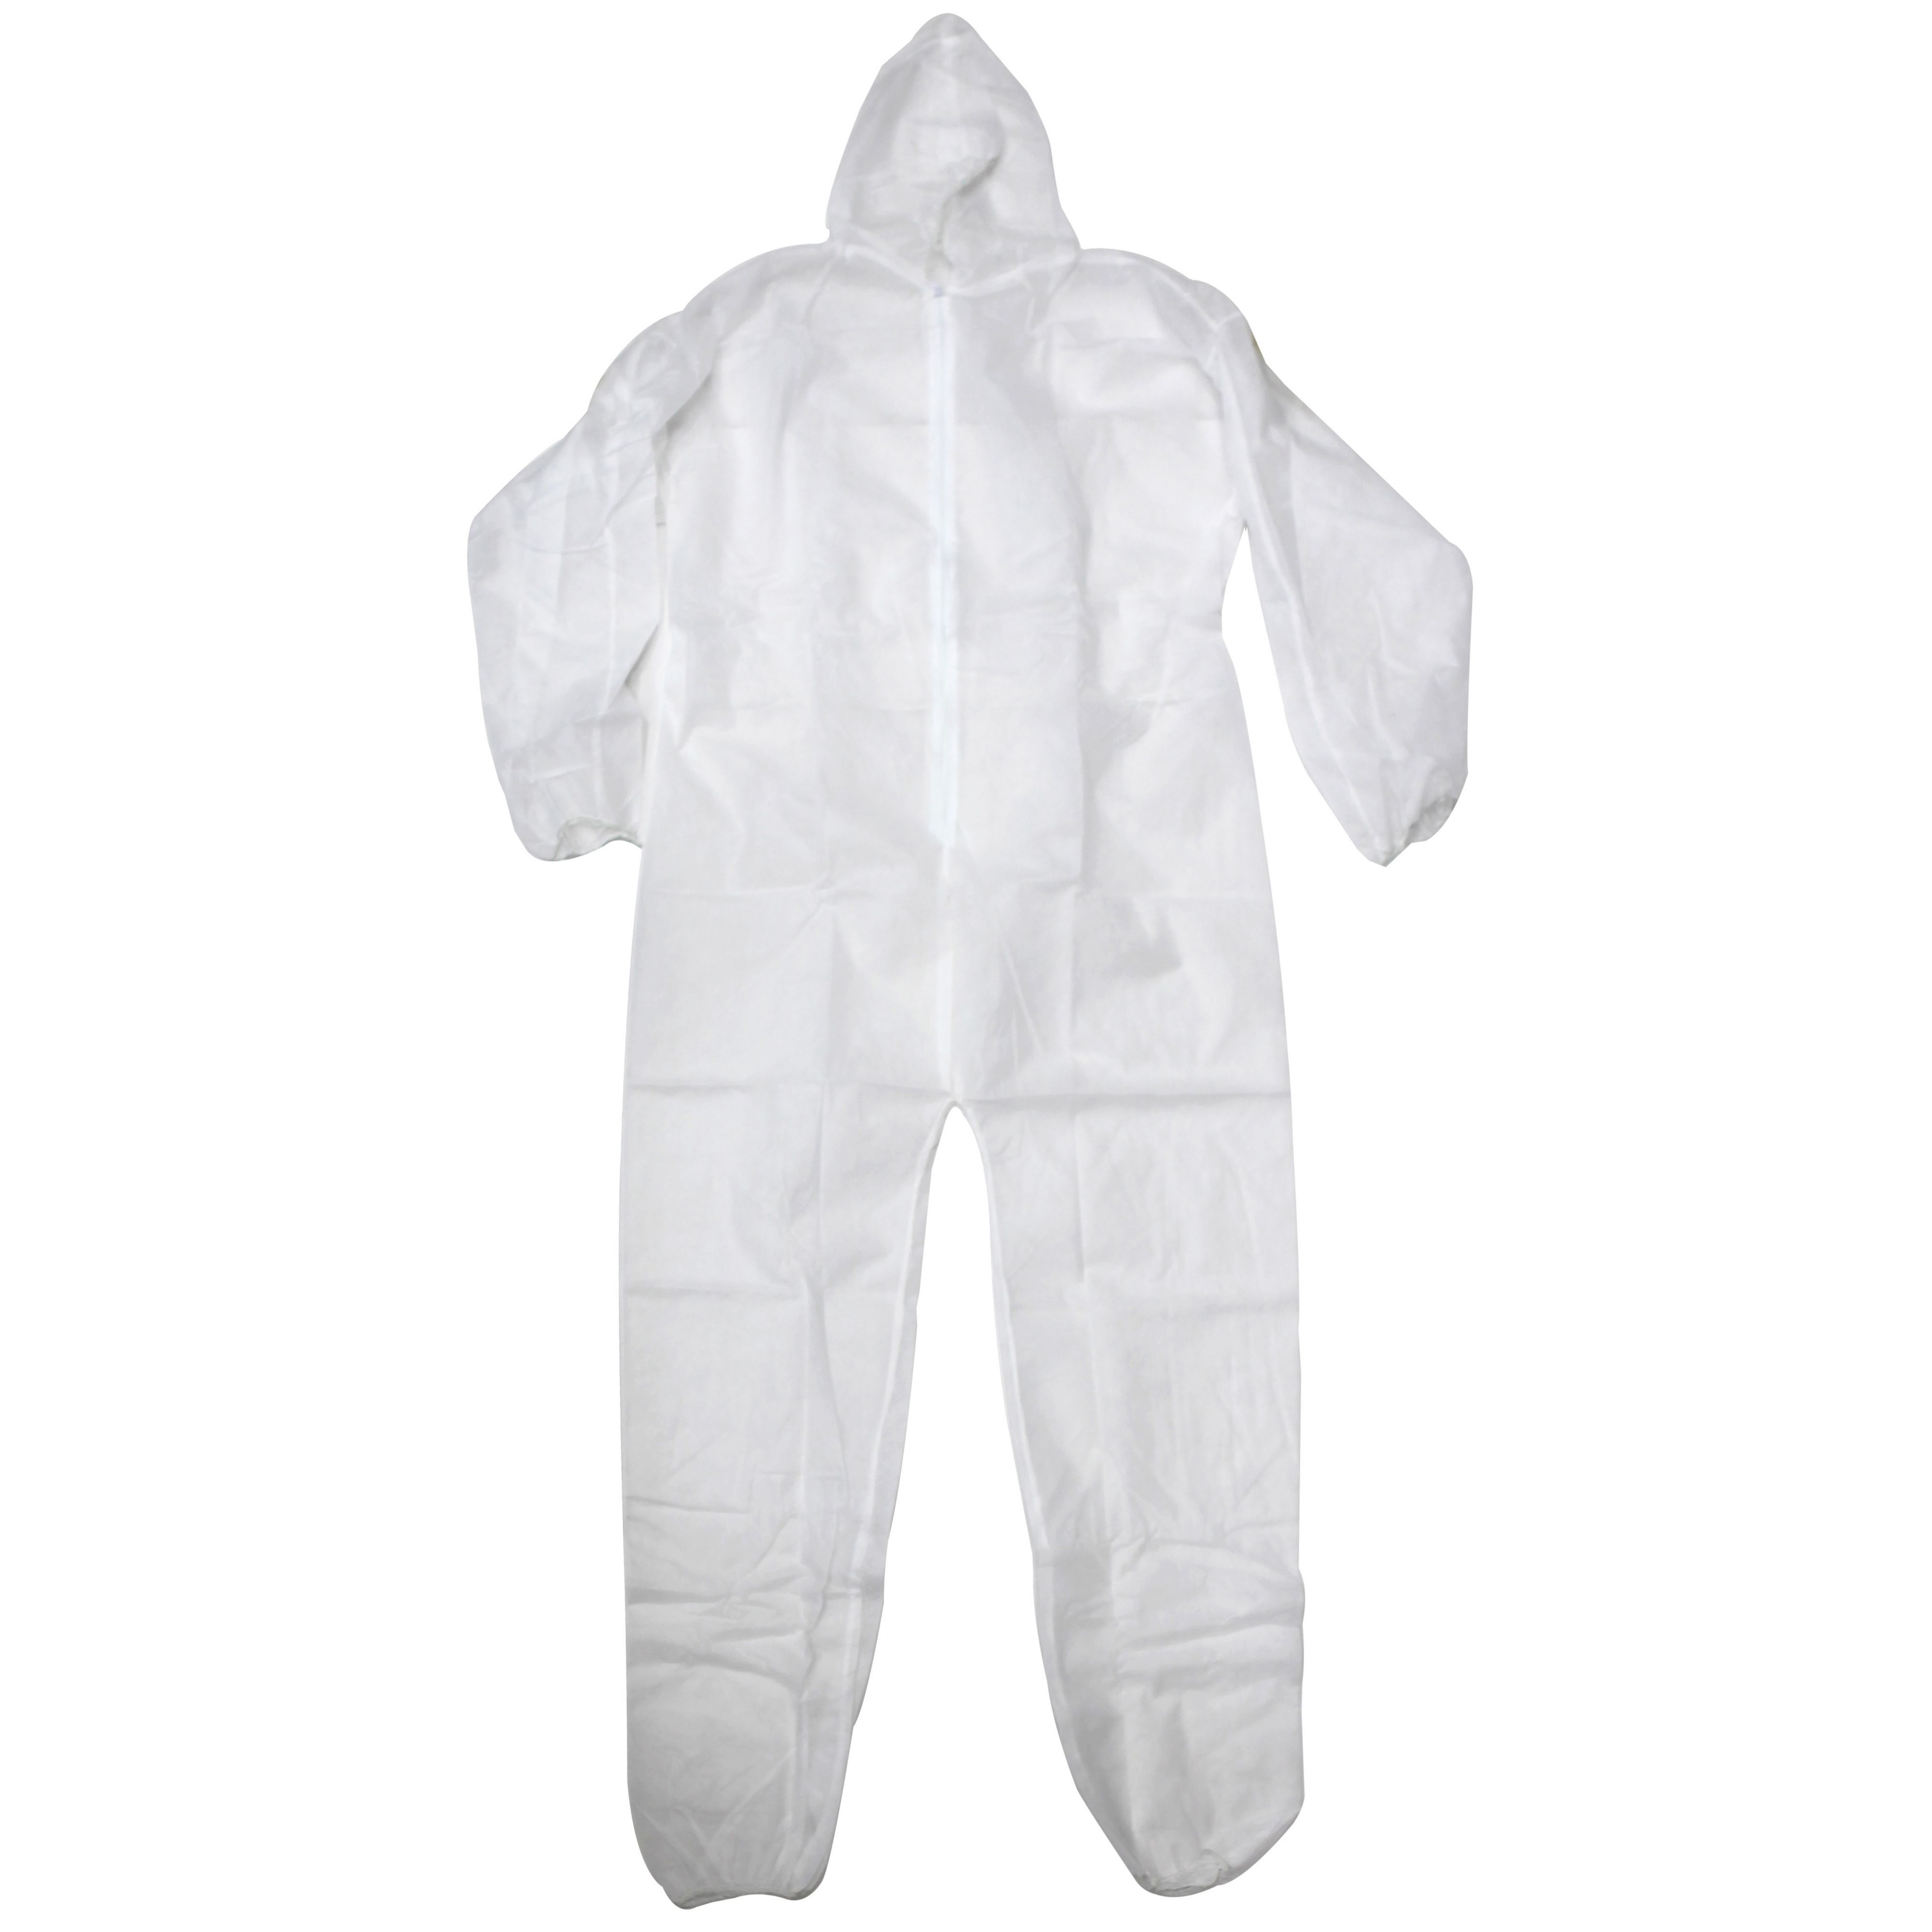 Diall White Disposable Coverall Large | Departments